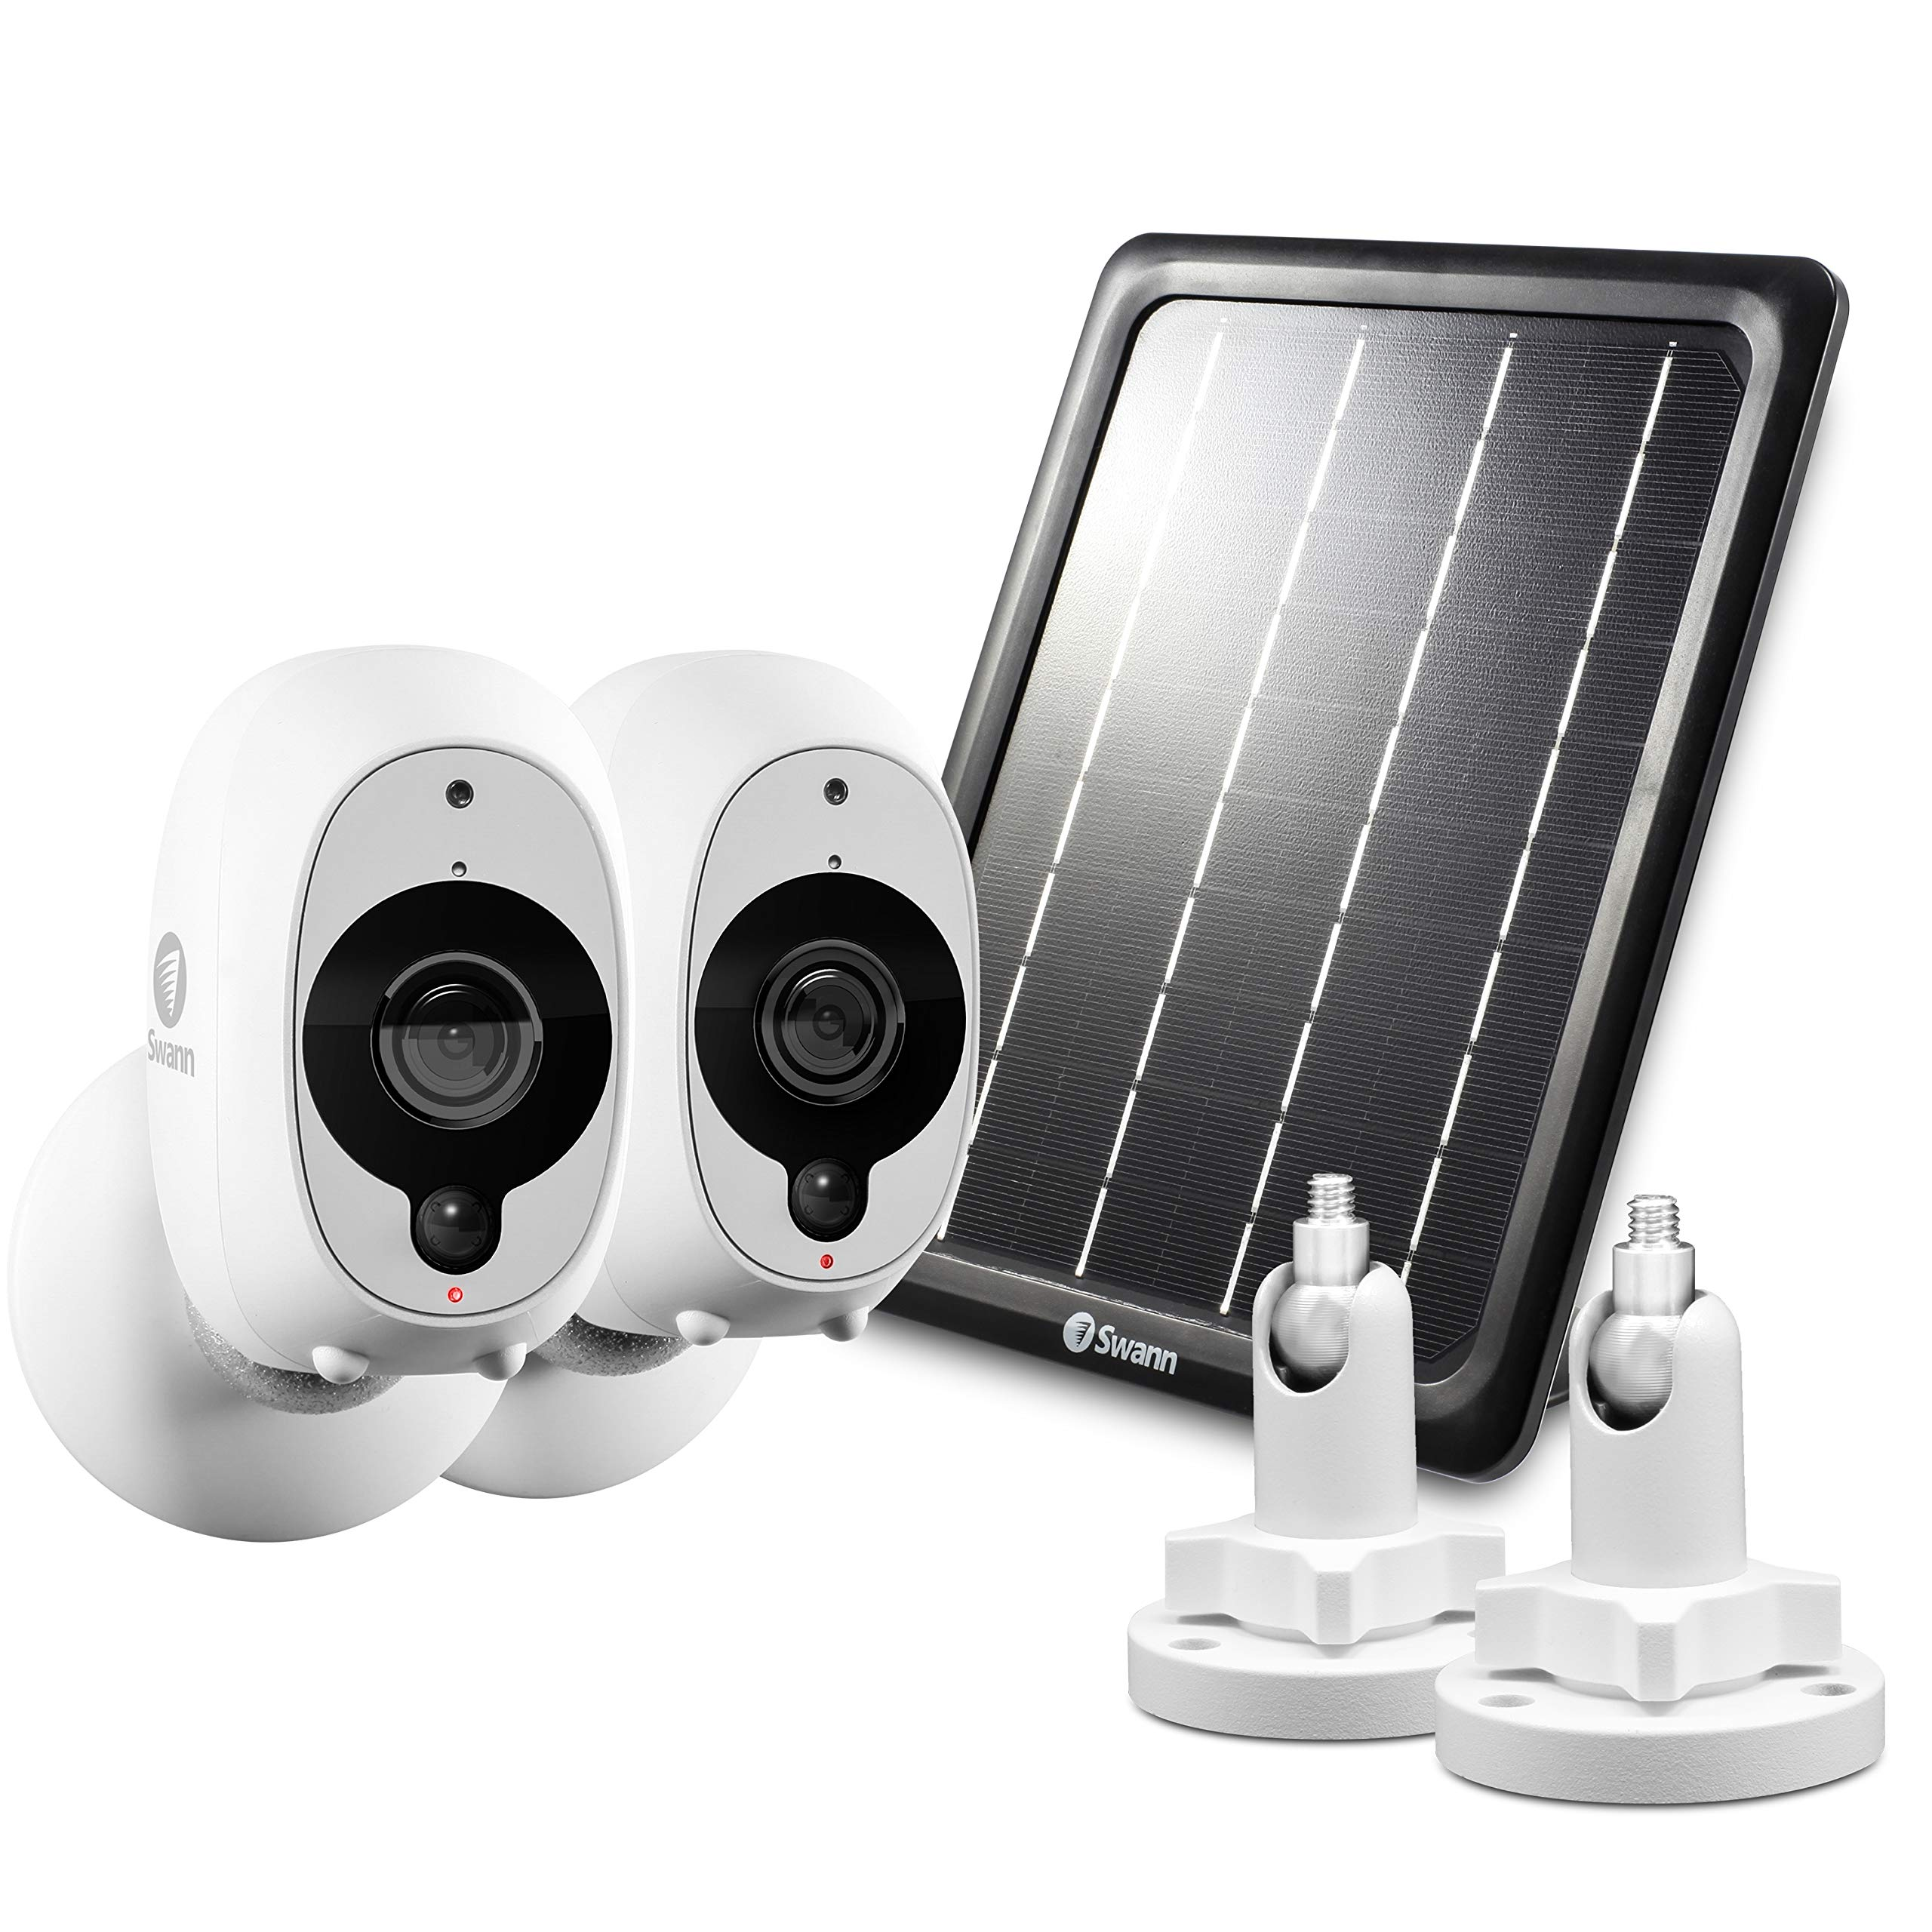 Swann Smart Security Battery Camera, Solar Panel and Mounts, White (SRWHD-INT2SOL1ST2-US) by Swann